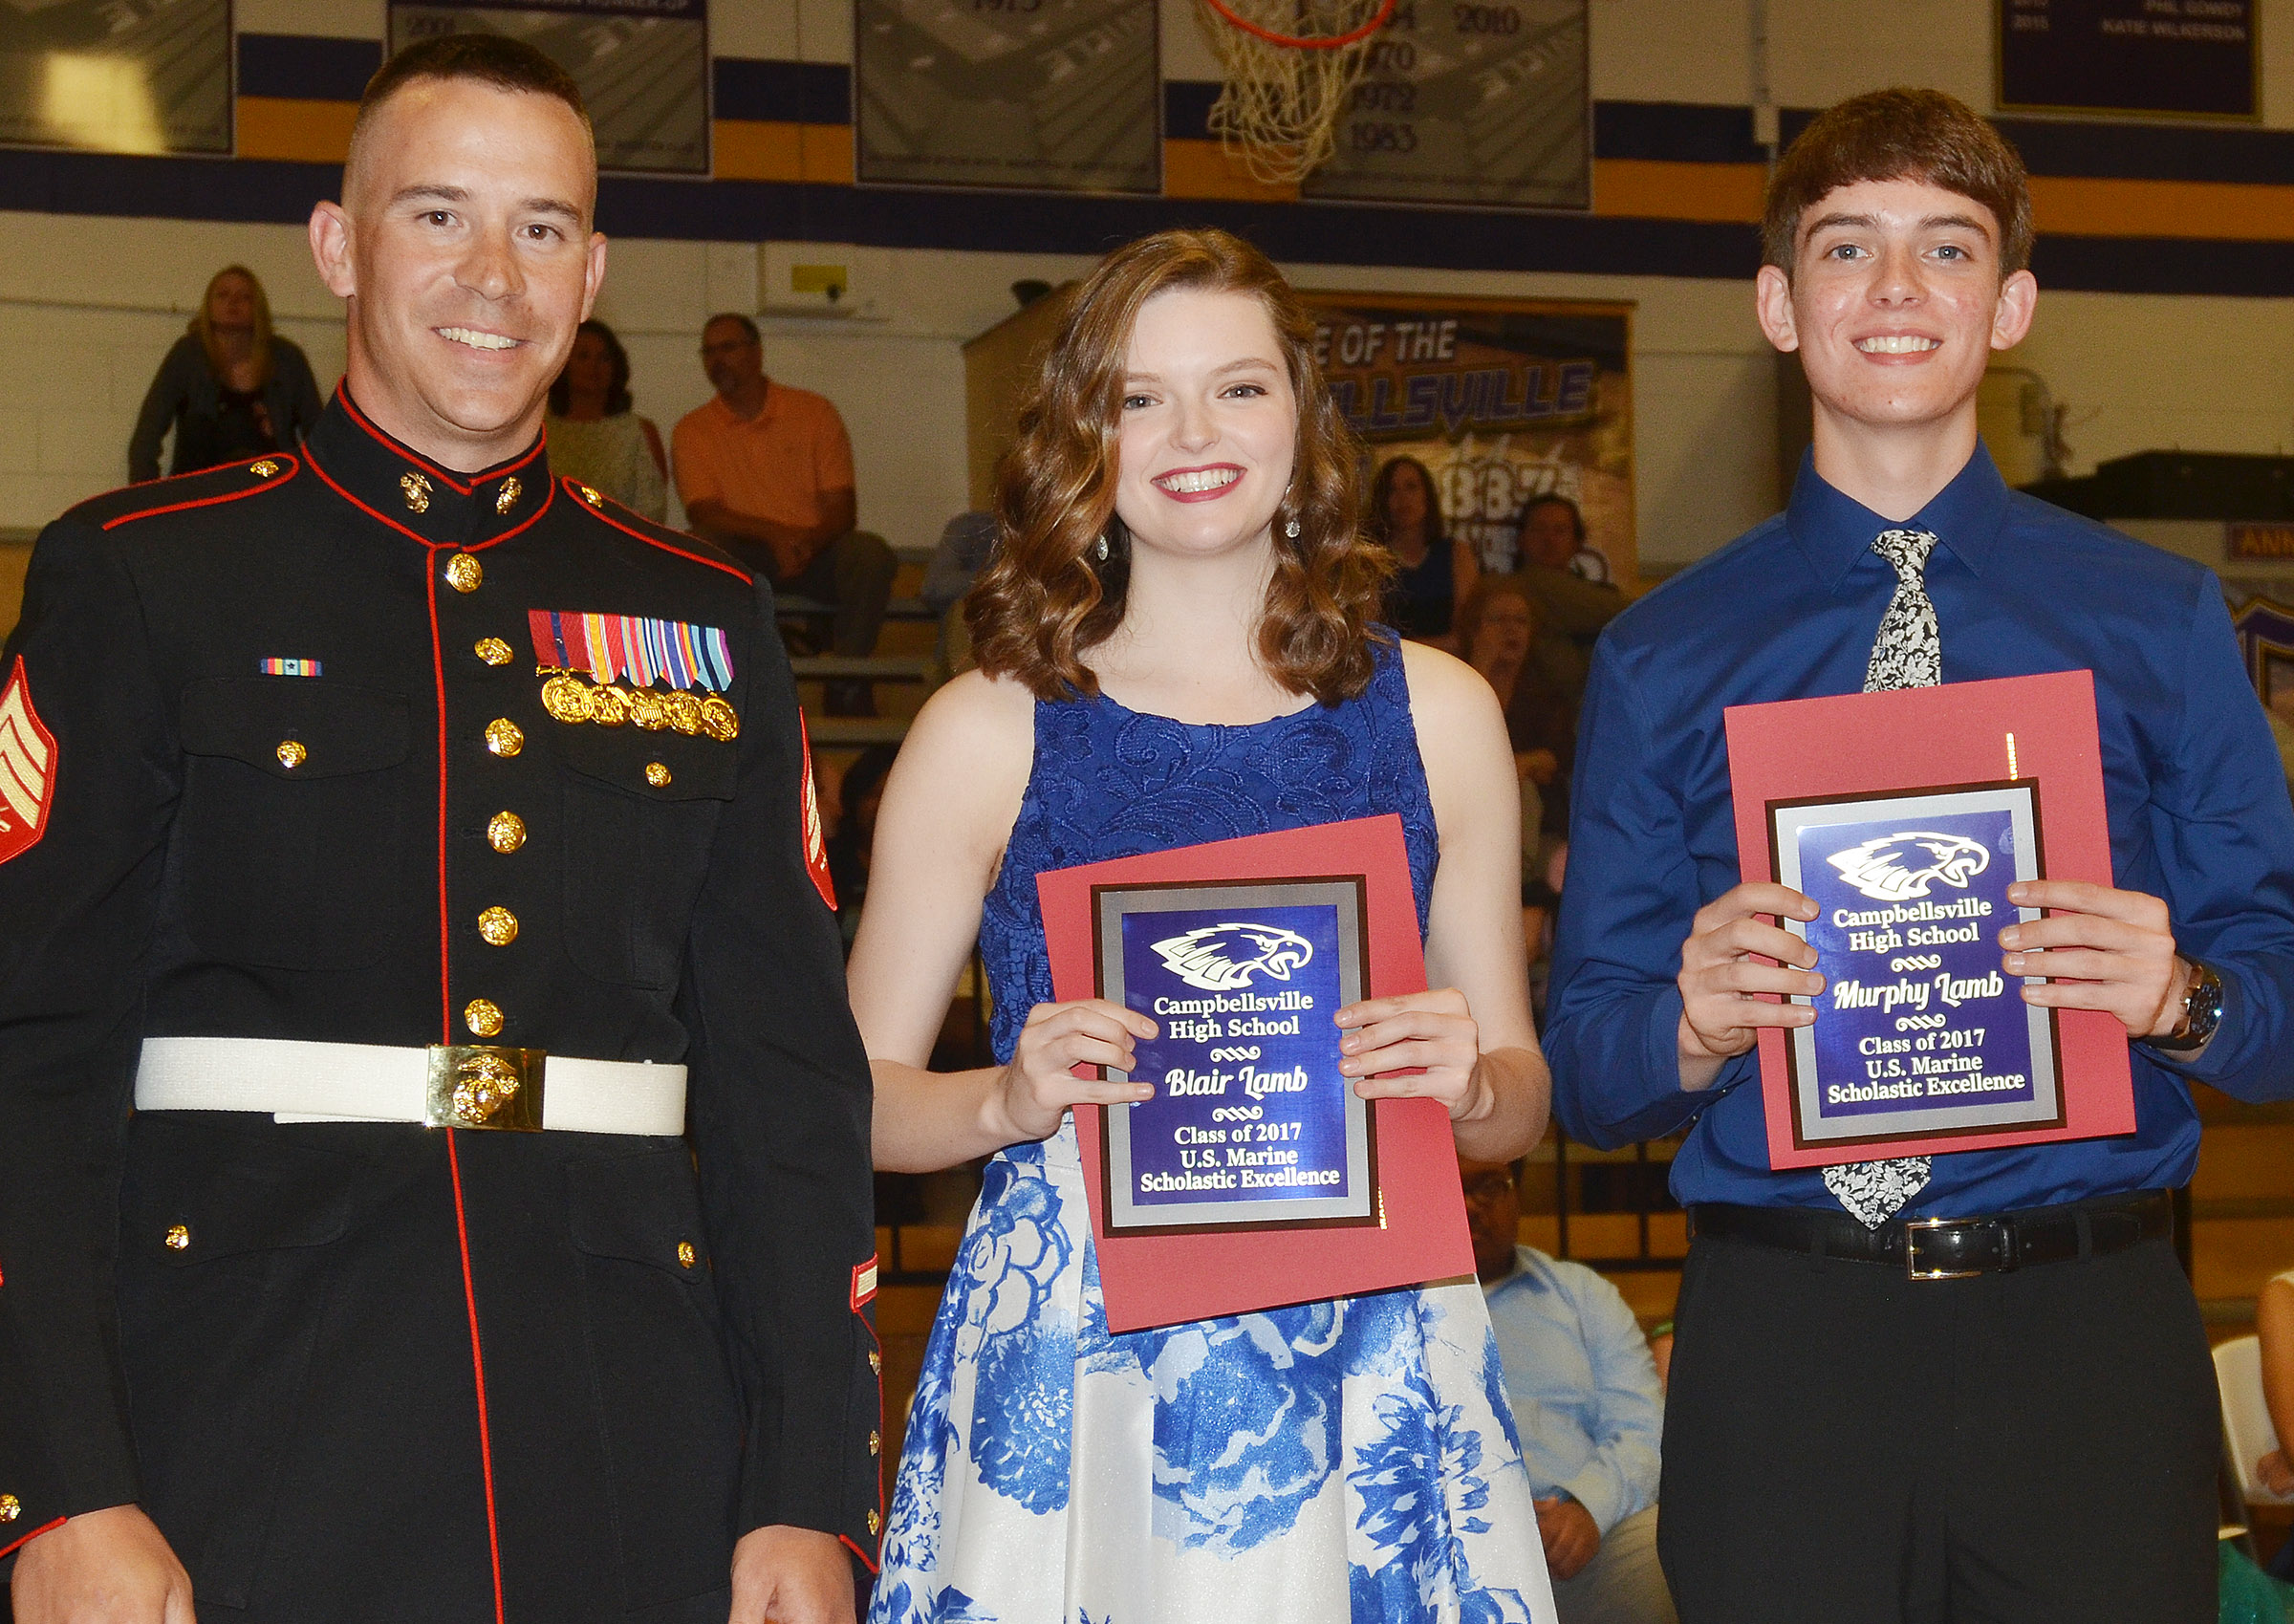 Blair Lamb and Murphy Lamb receive the U.S. Marine Scholastic Excellence awards from Sgt. Nelson.